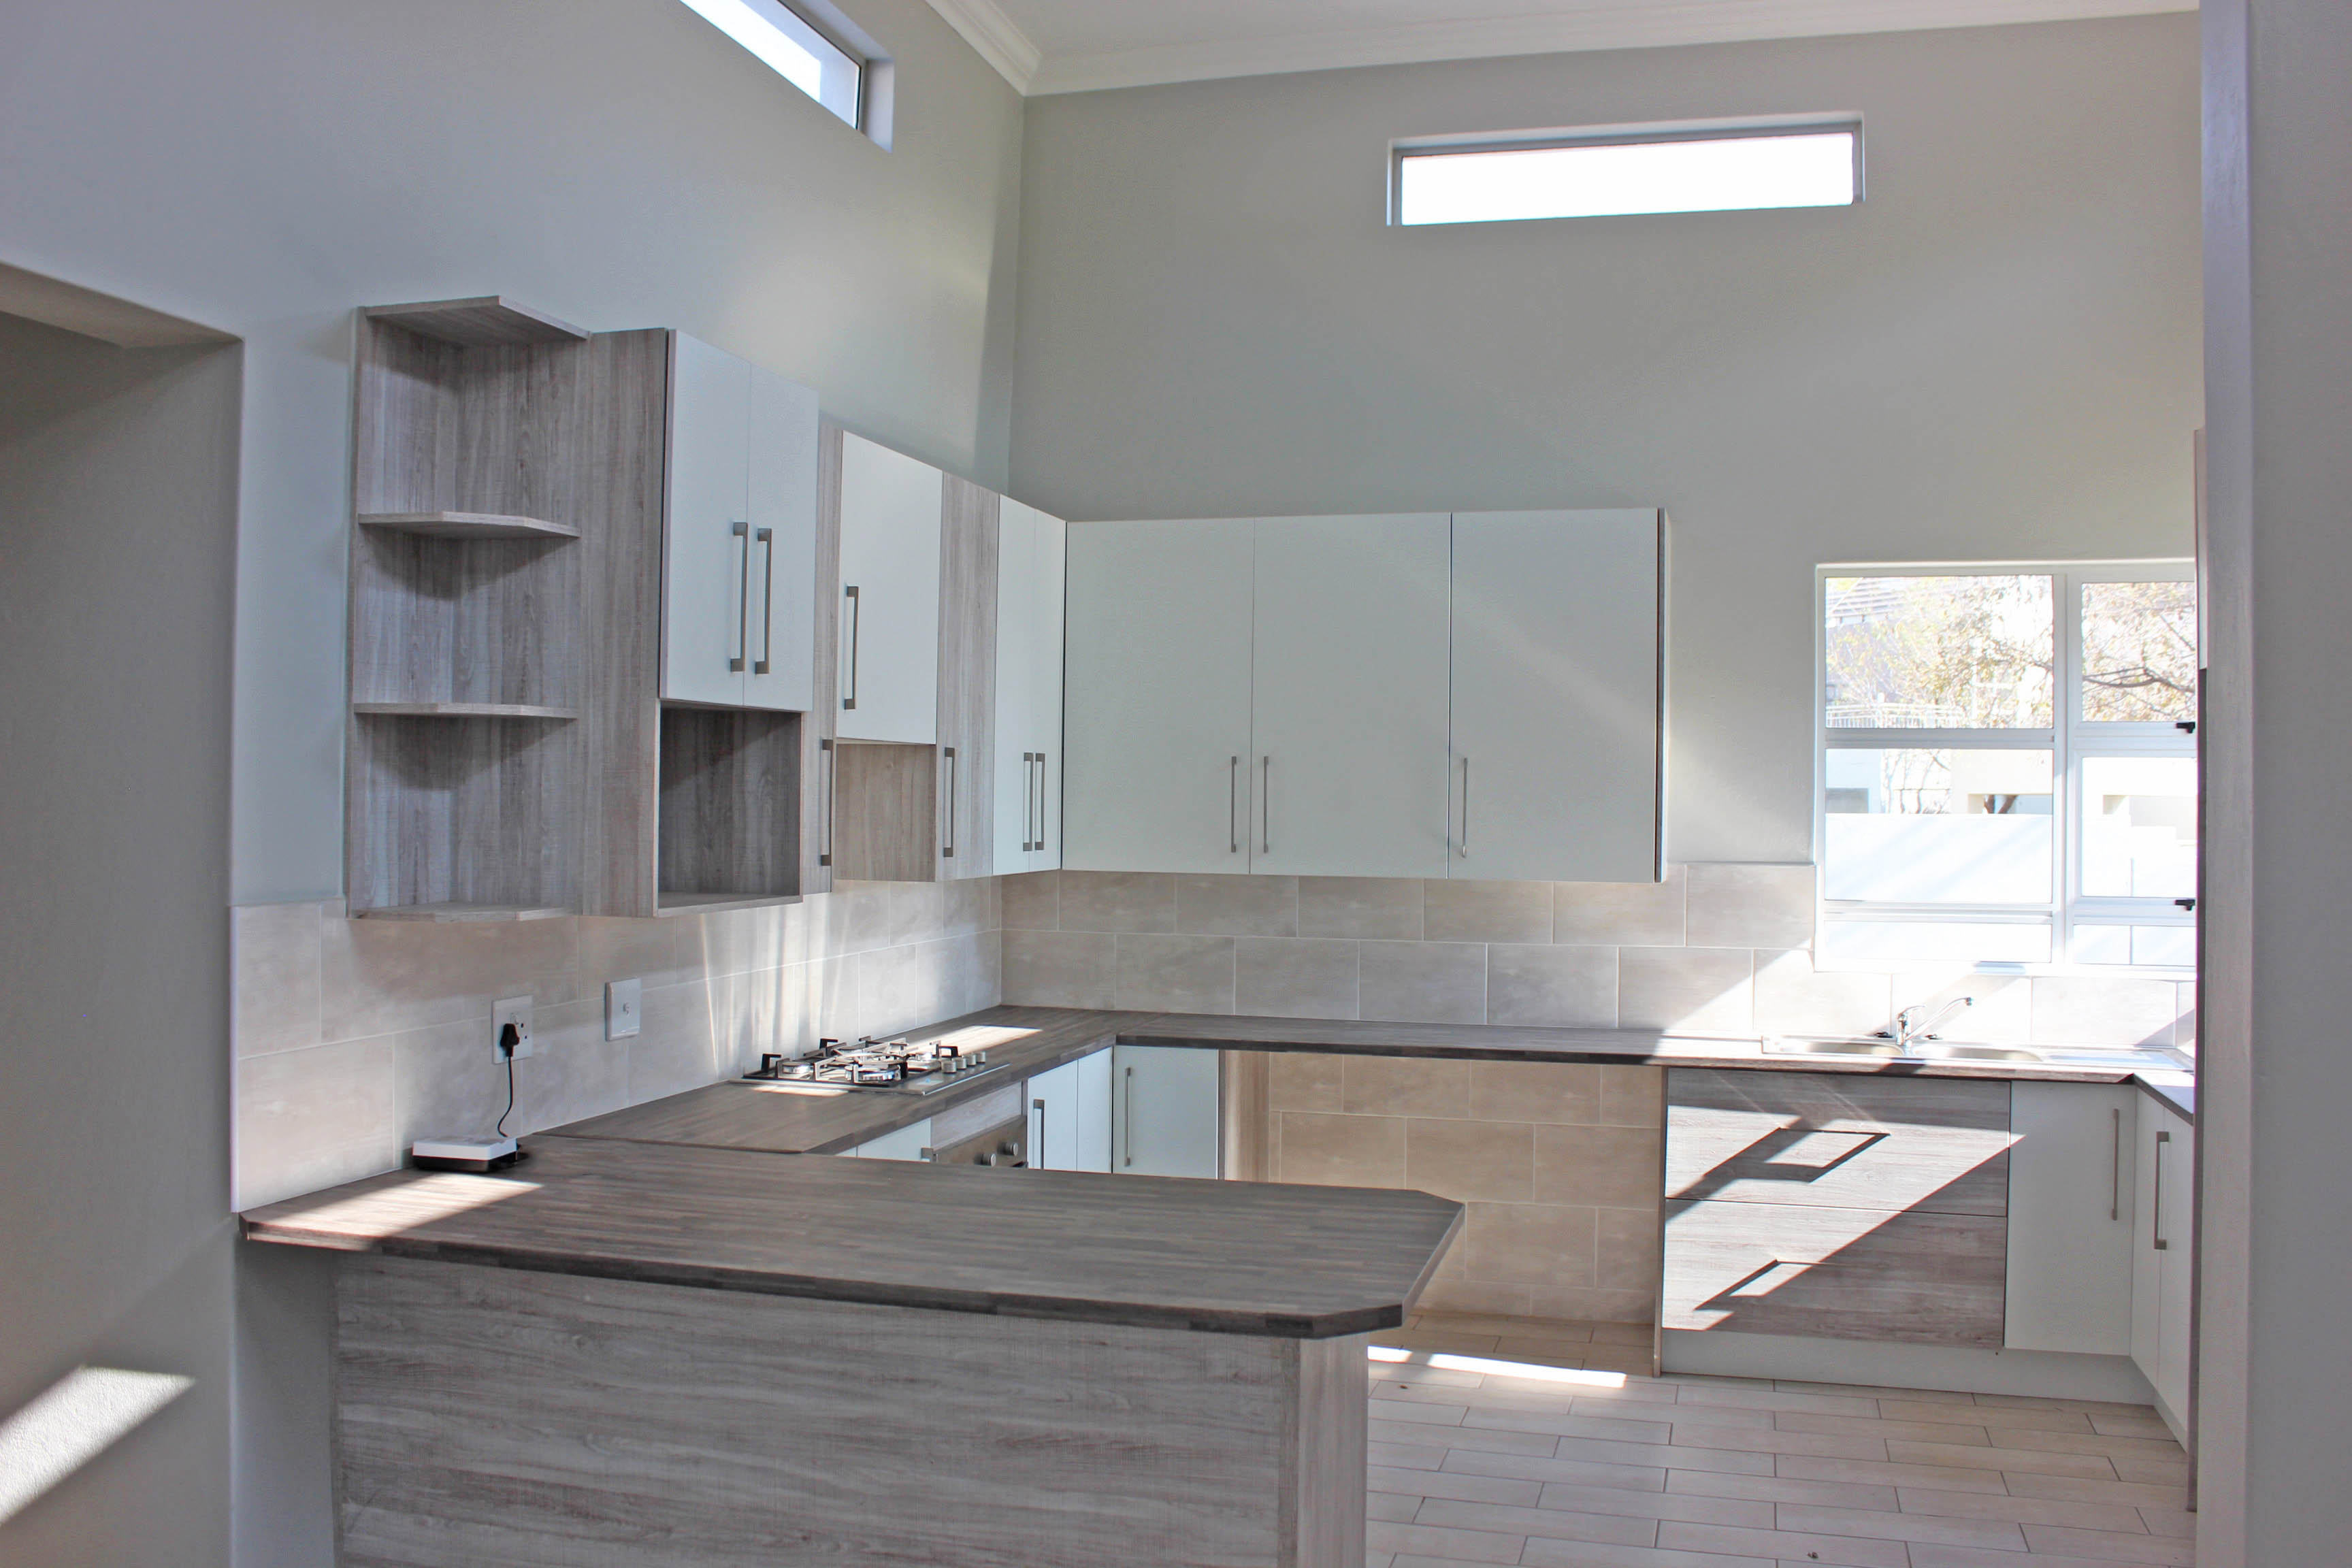 3 Bedroom Townhouse for sale in North Riding ENT0075308 : photo#4